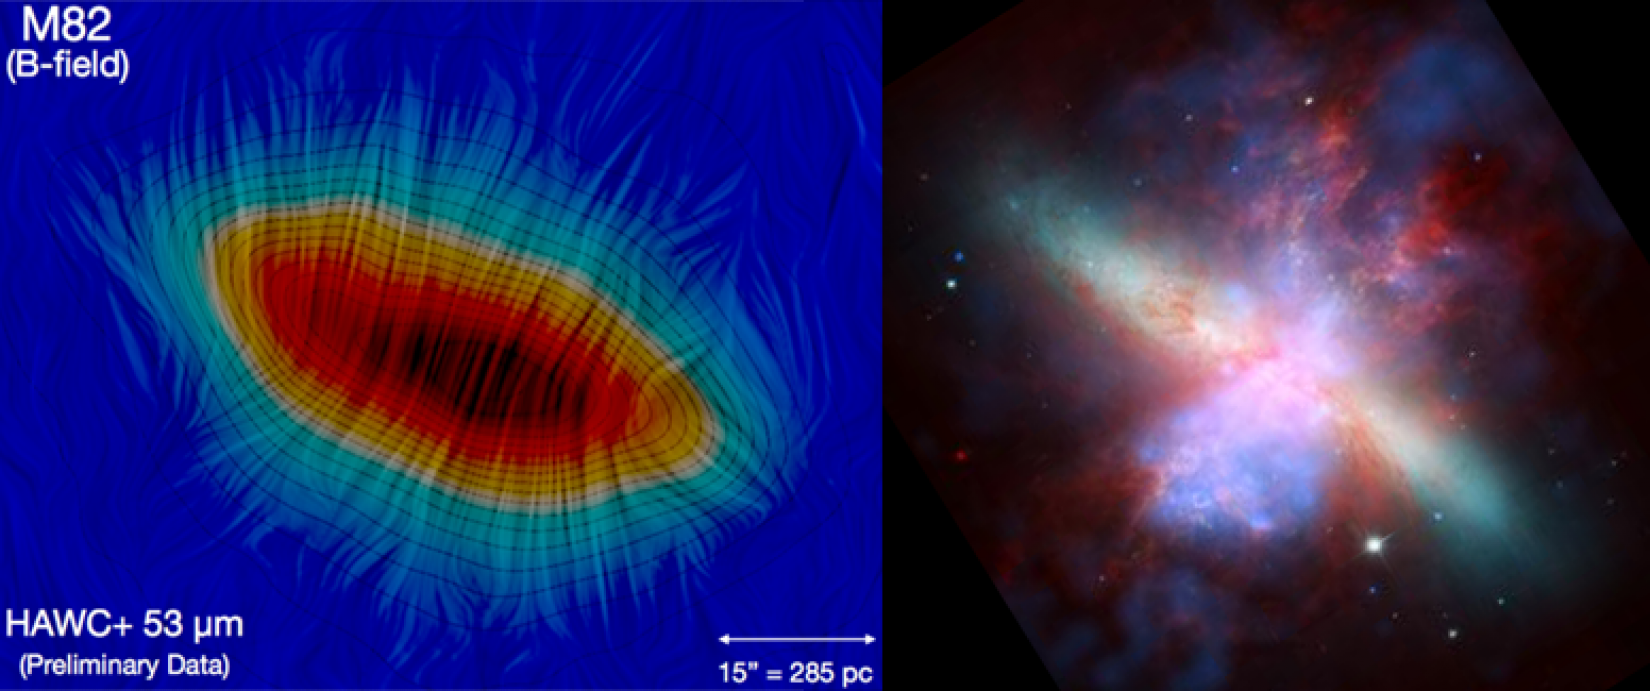 A view of the large-scale magnetic in the starburst galaxy M82 and multi-wavelength view of the galaxy.